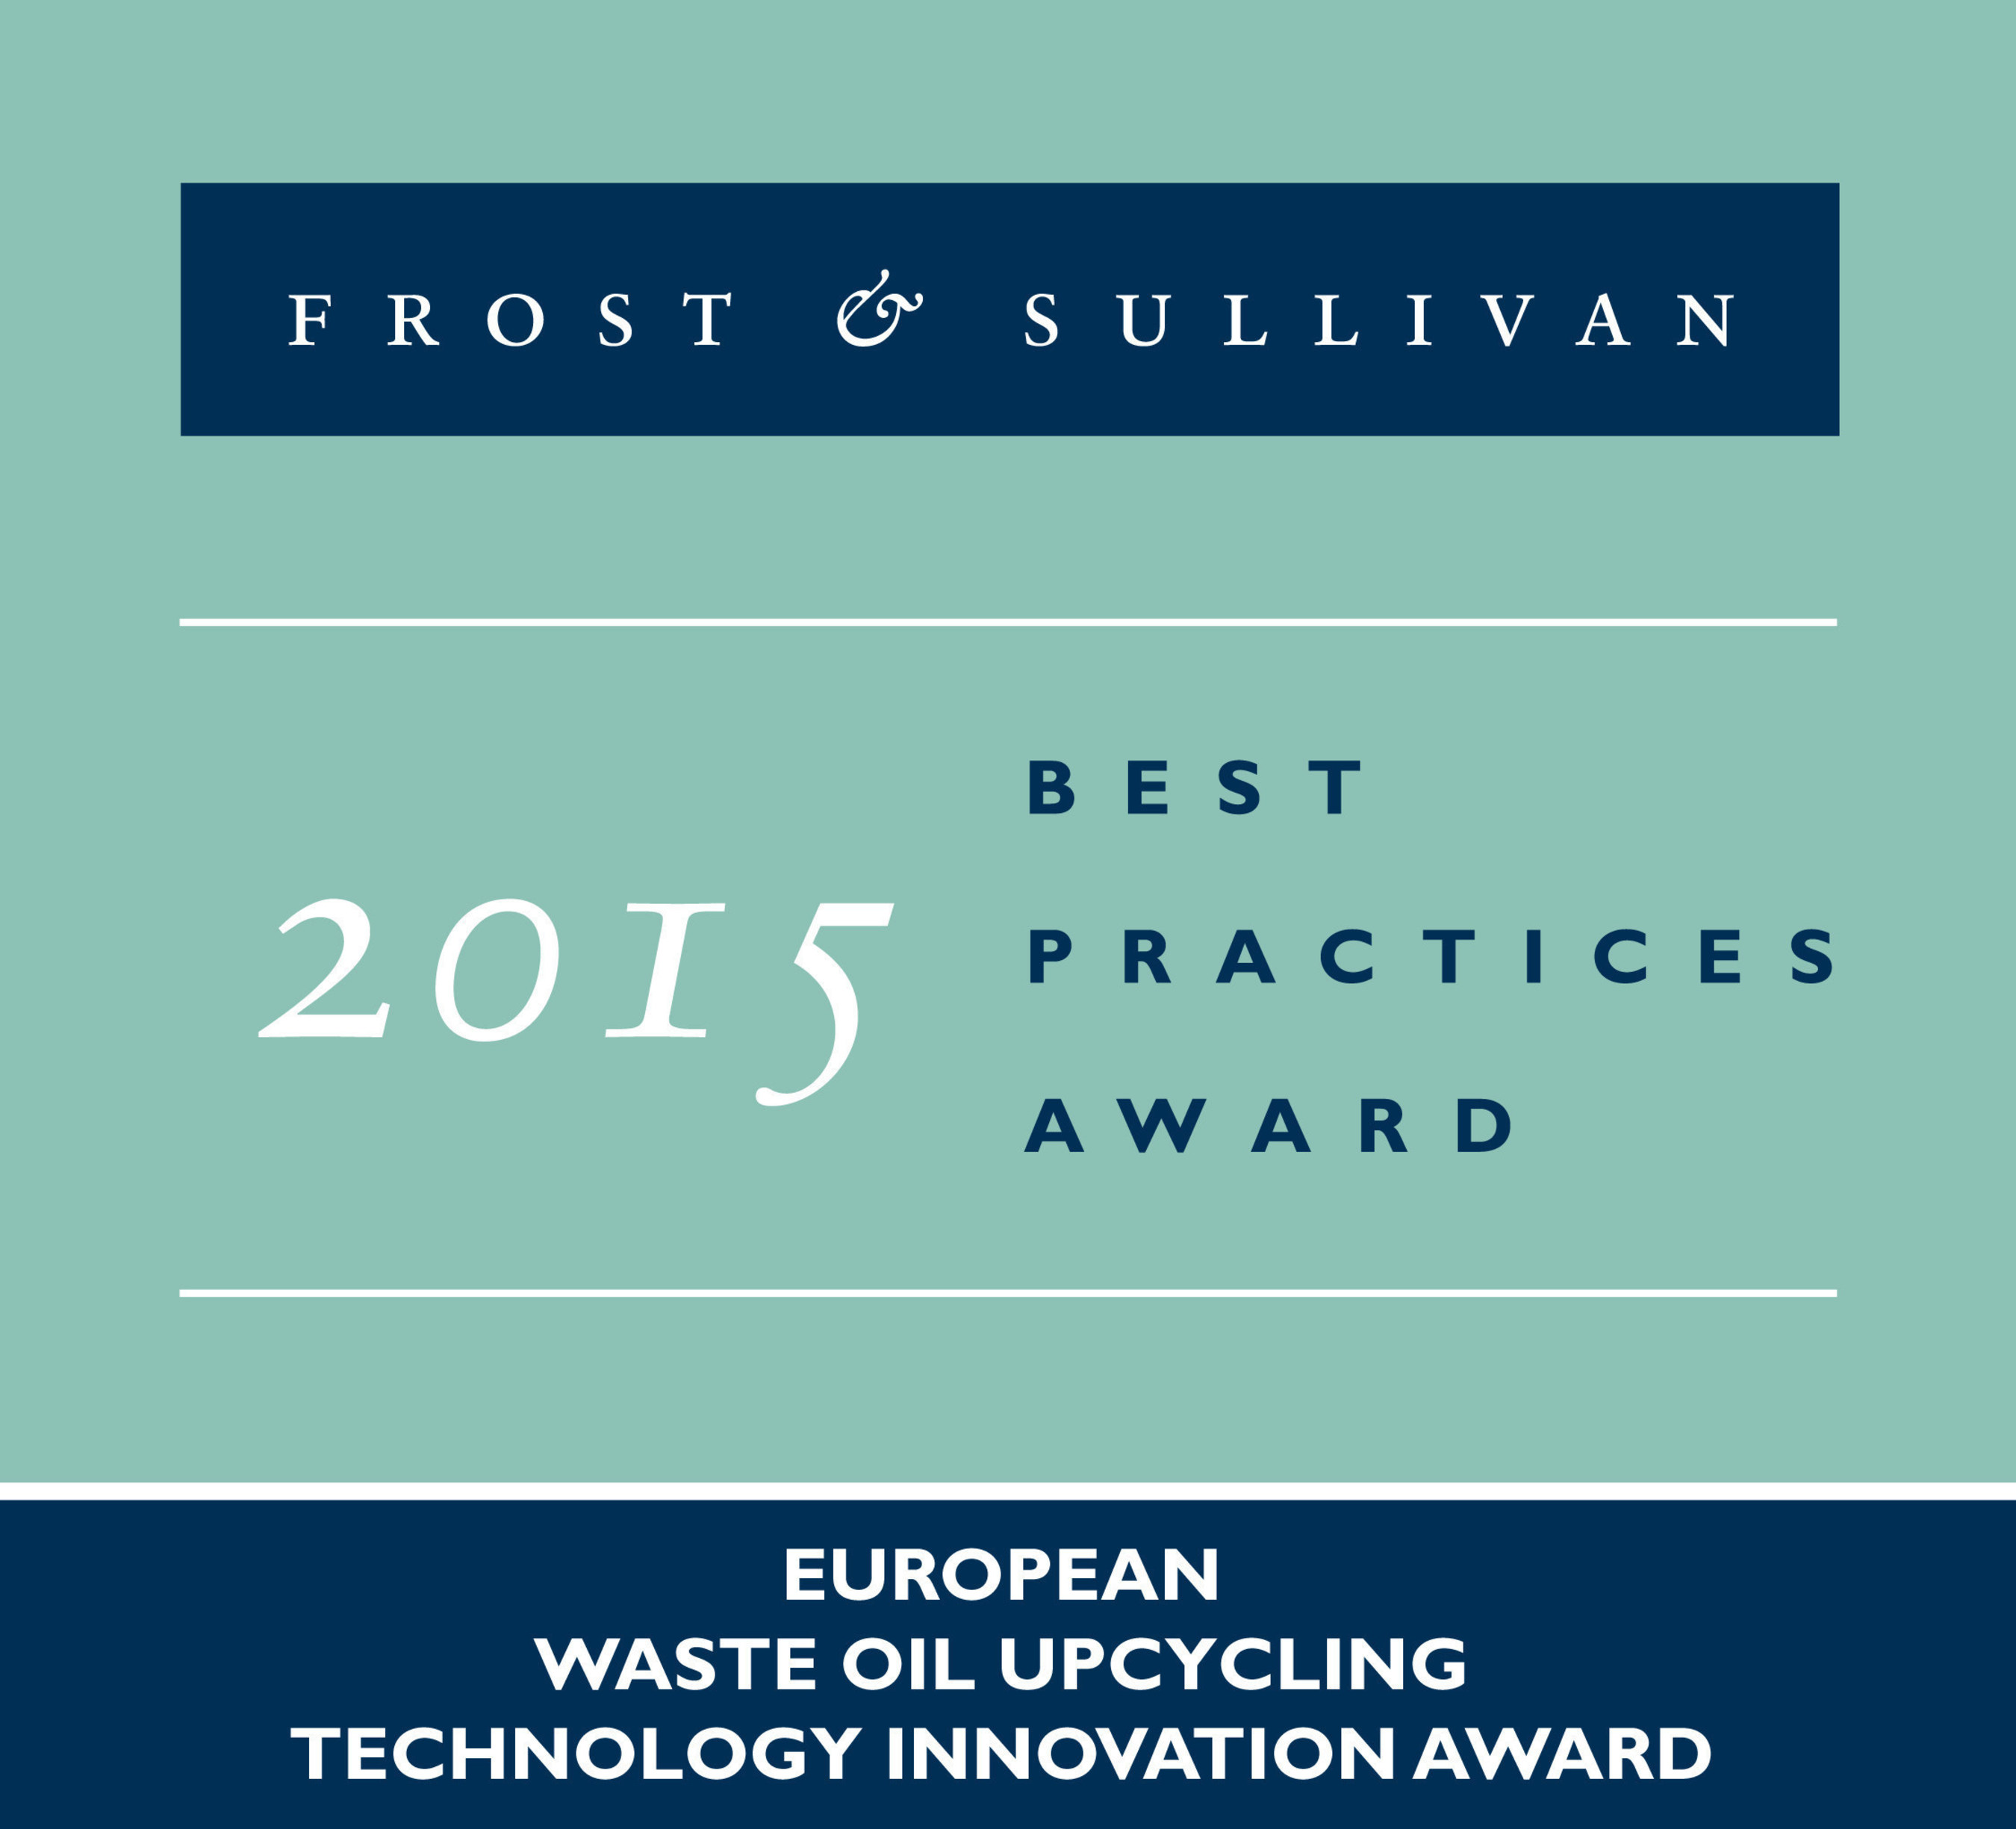 Frost & Sullivan Applauds Hydal for Ensuring Sustainability of Feedstock by Leveraging Food-based Waste for Waste Oil Upcycling